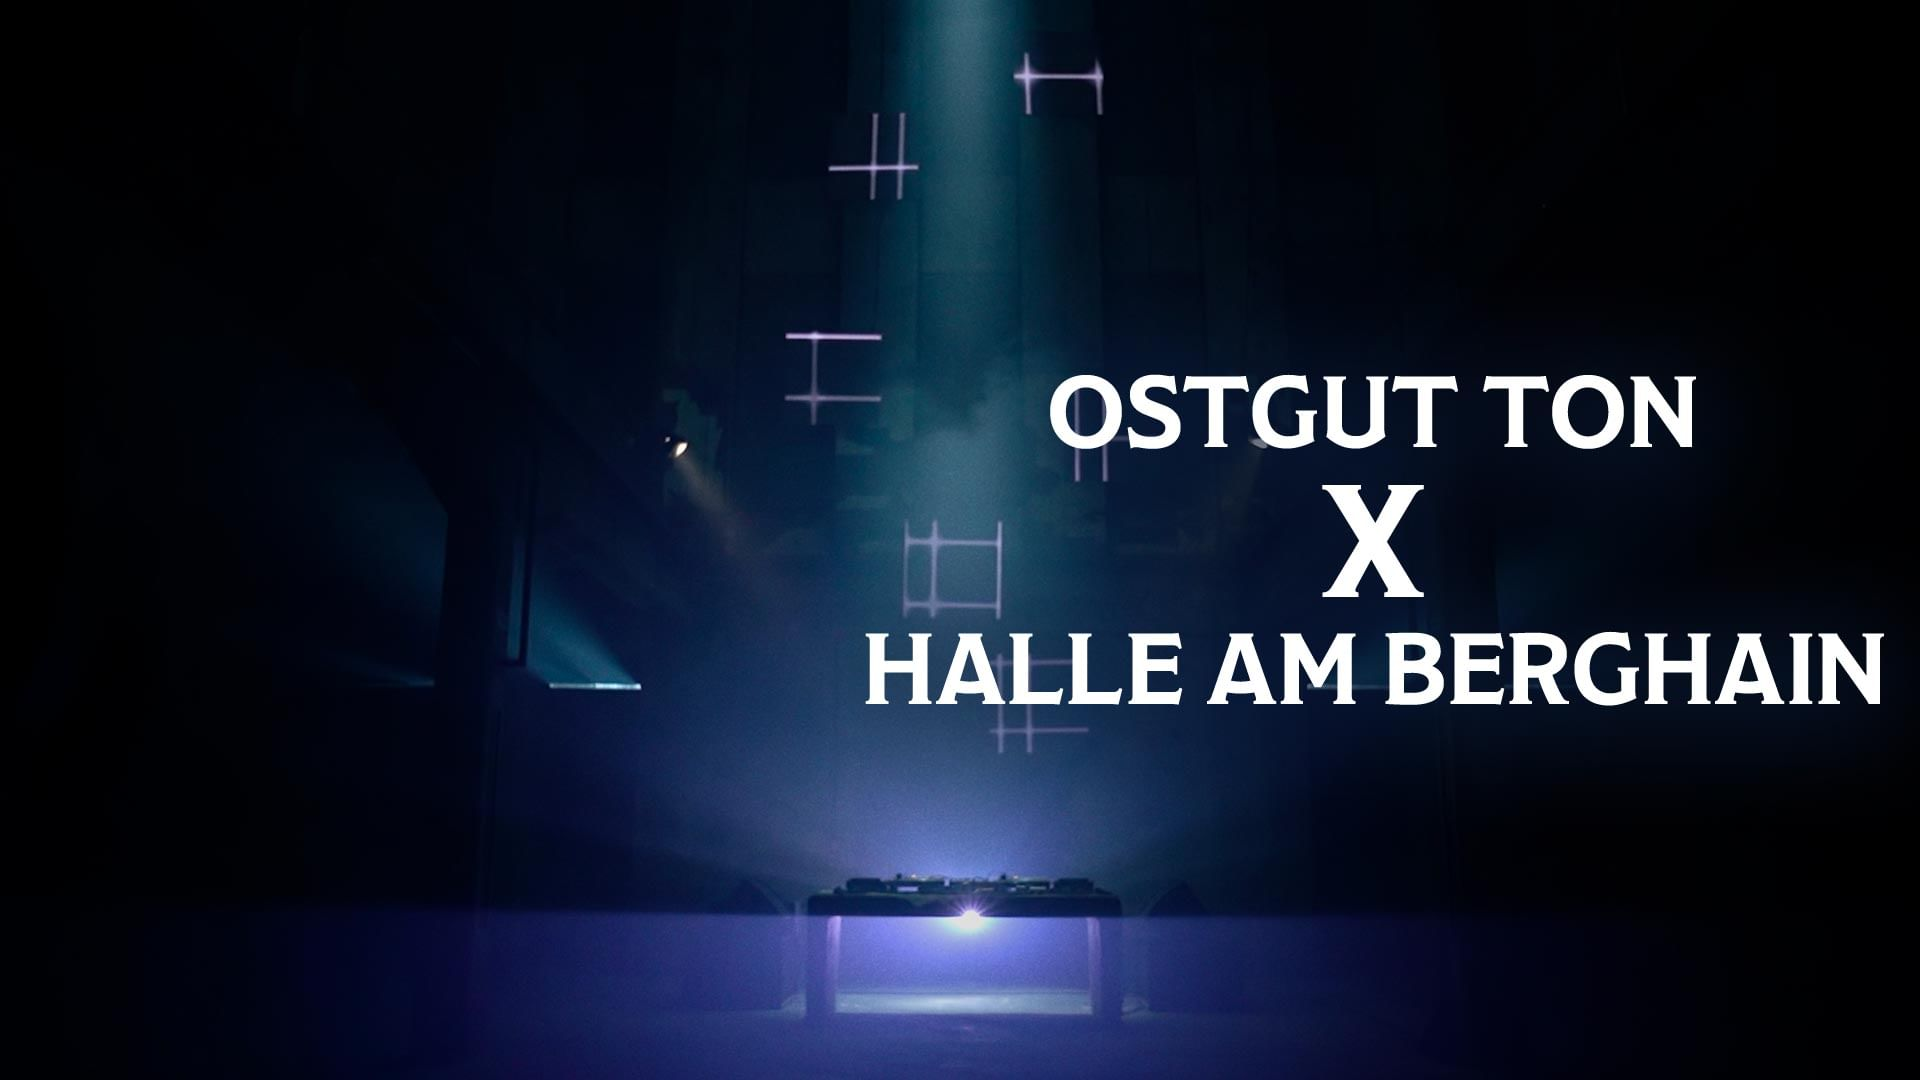 Ostgut Ton from the Halle am Berghain